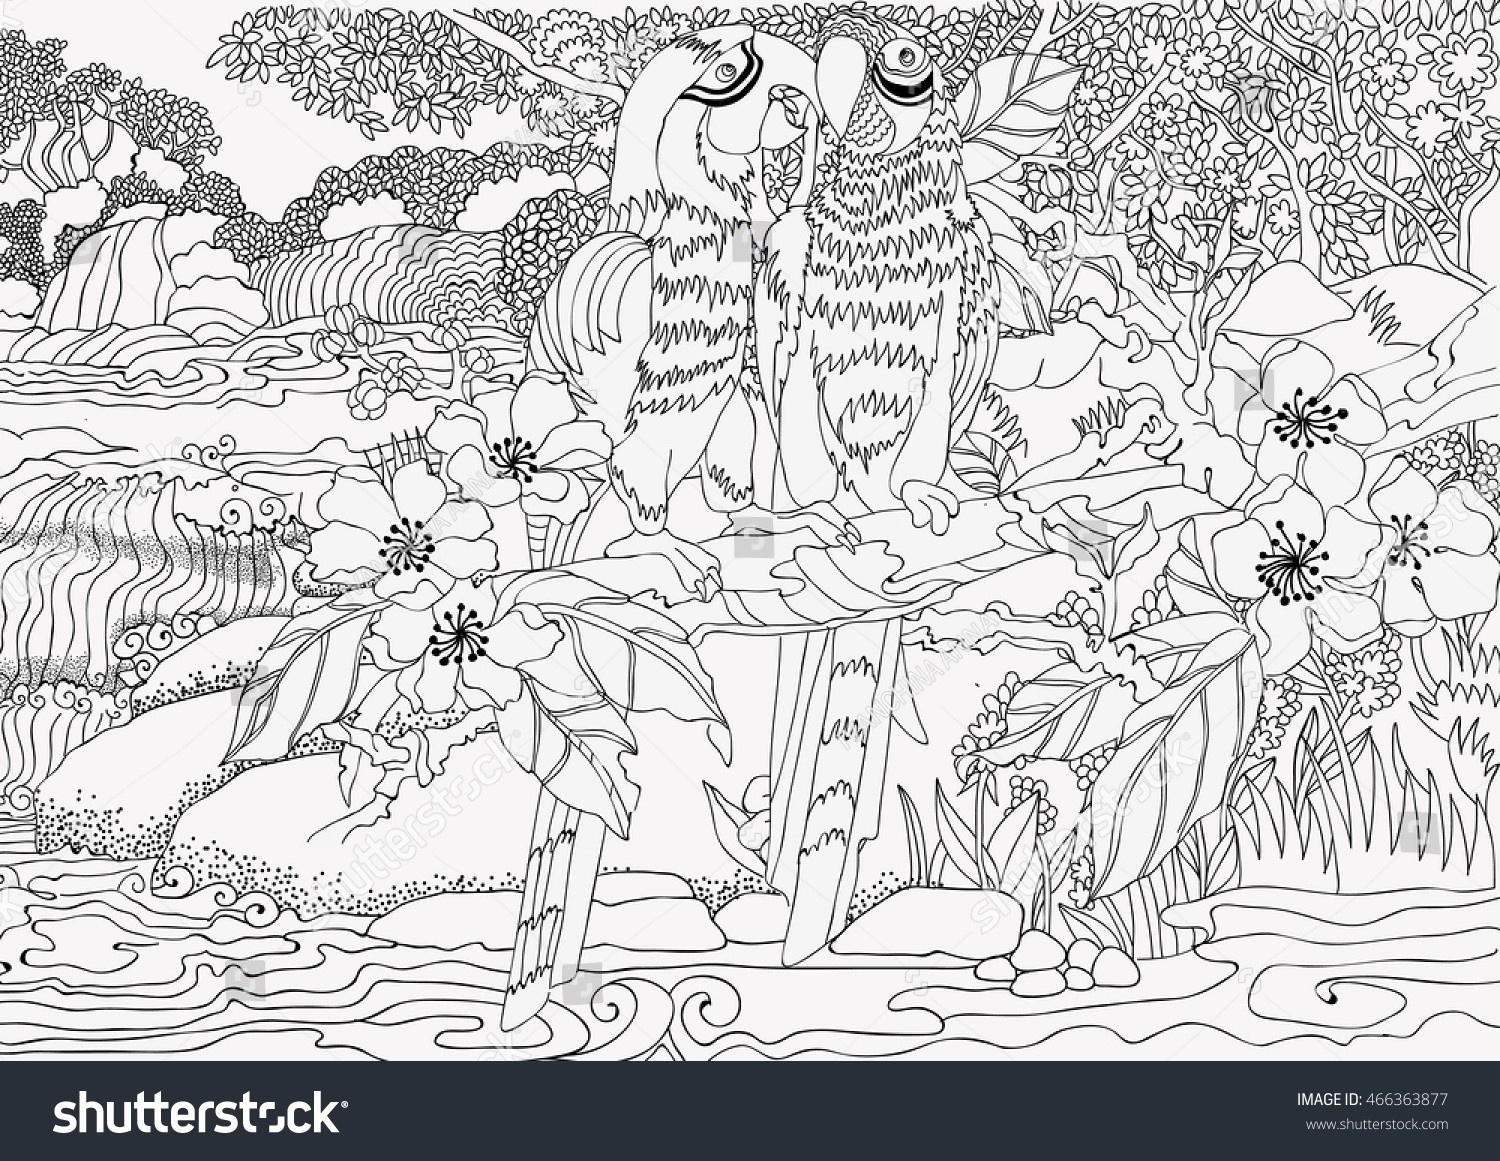 Waterfall Colouring Pages - Riodejaneiroorganicgrowers - Free Printable Waterfall Coloring Pages